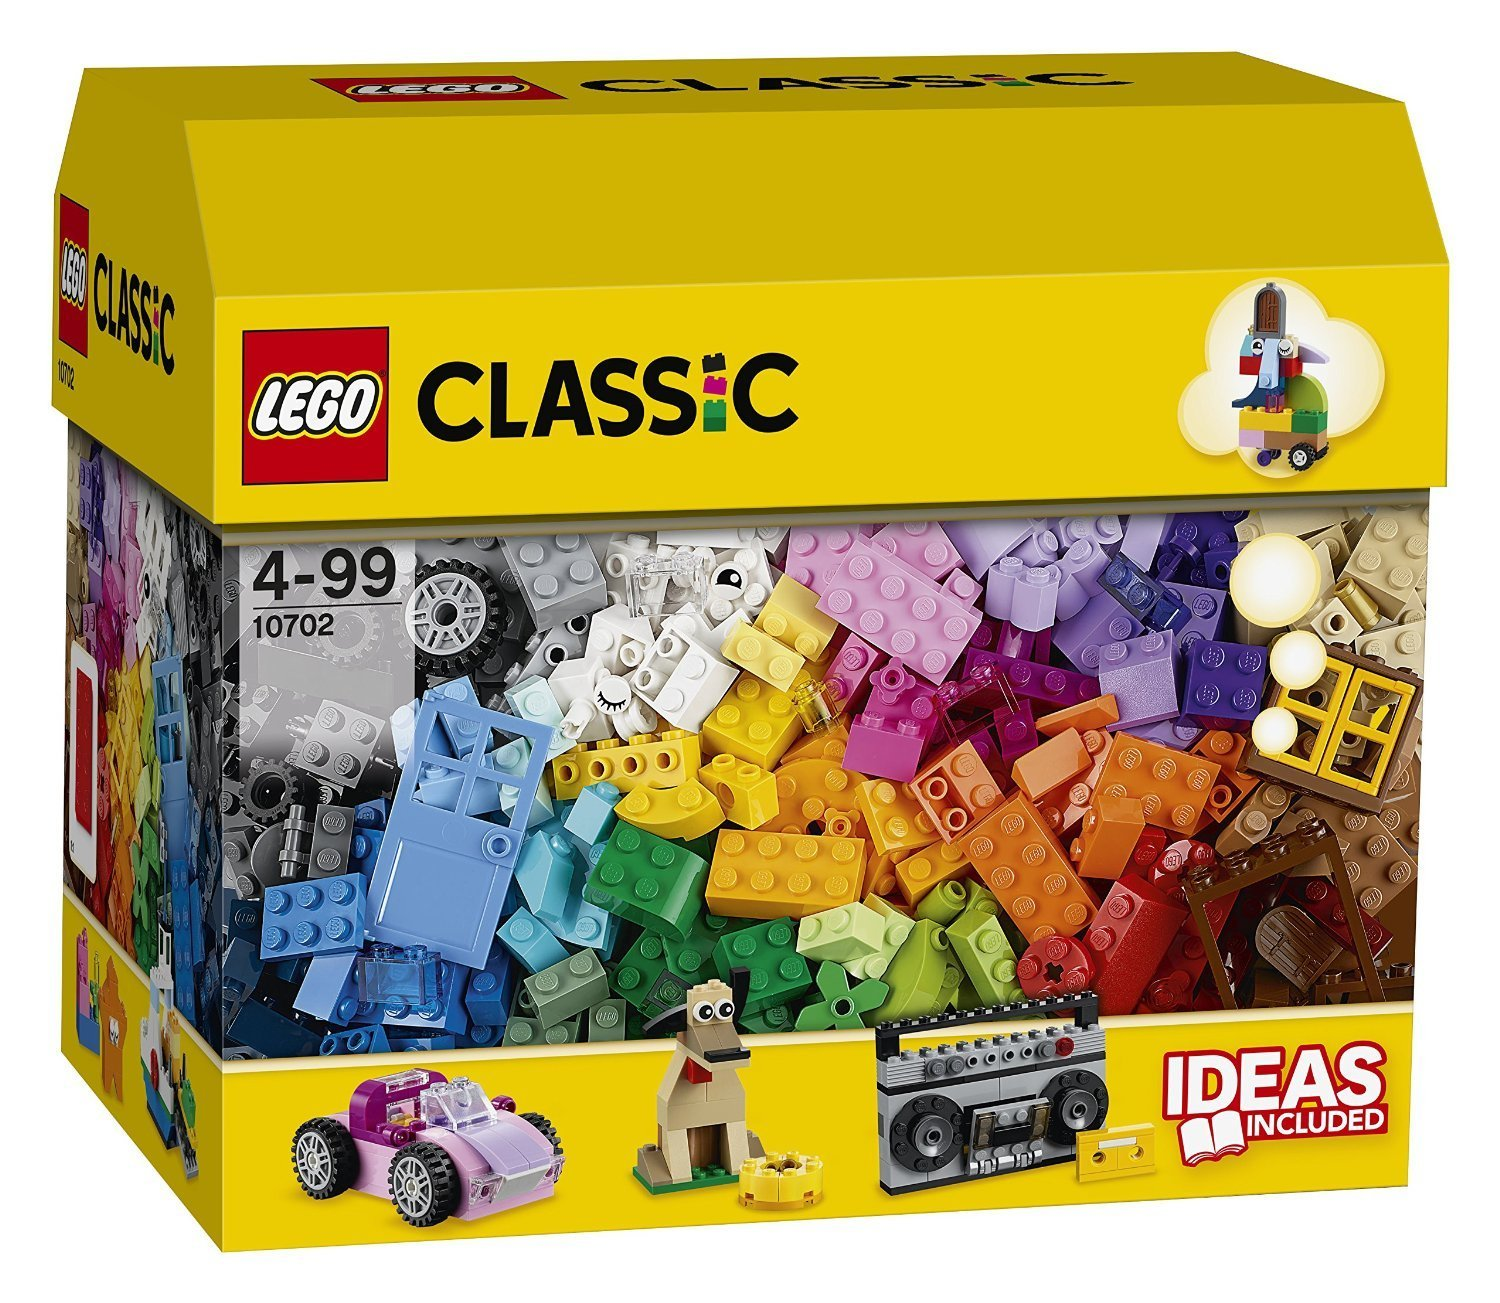 17 Beginner LEGO Project Ideas